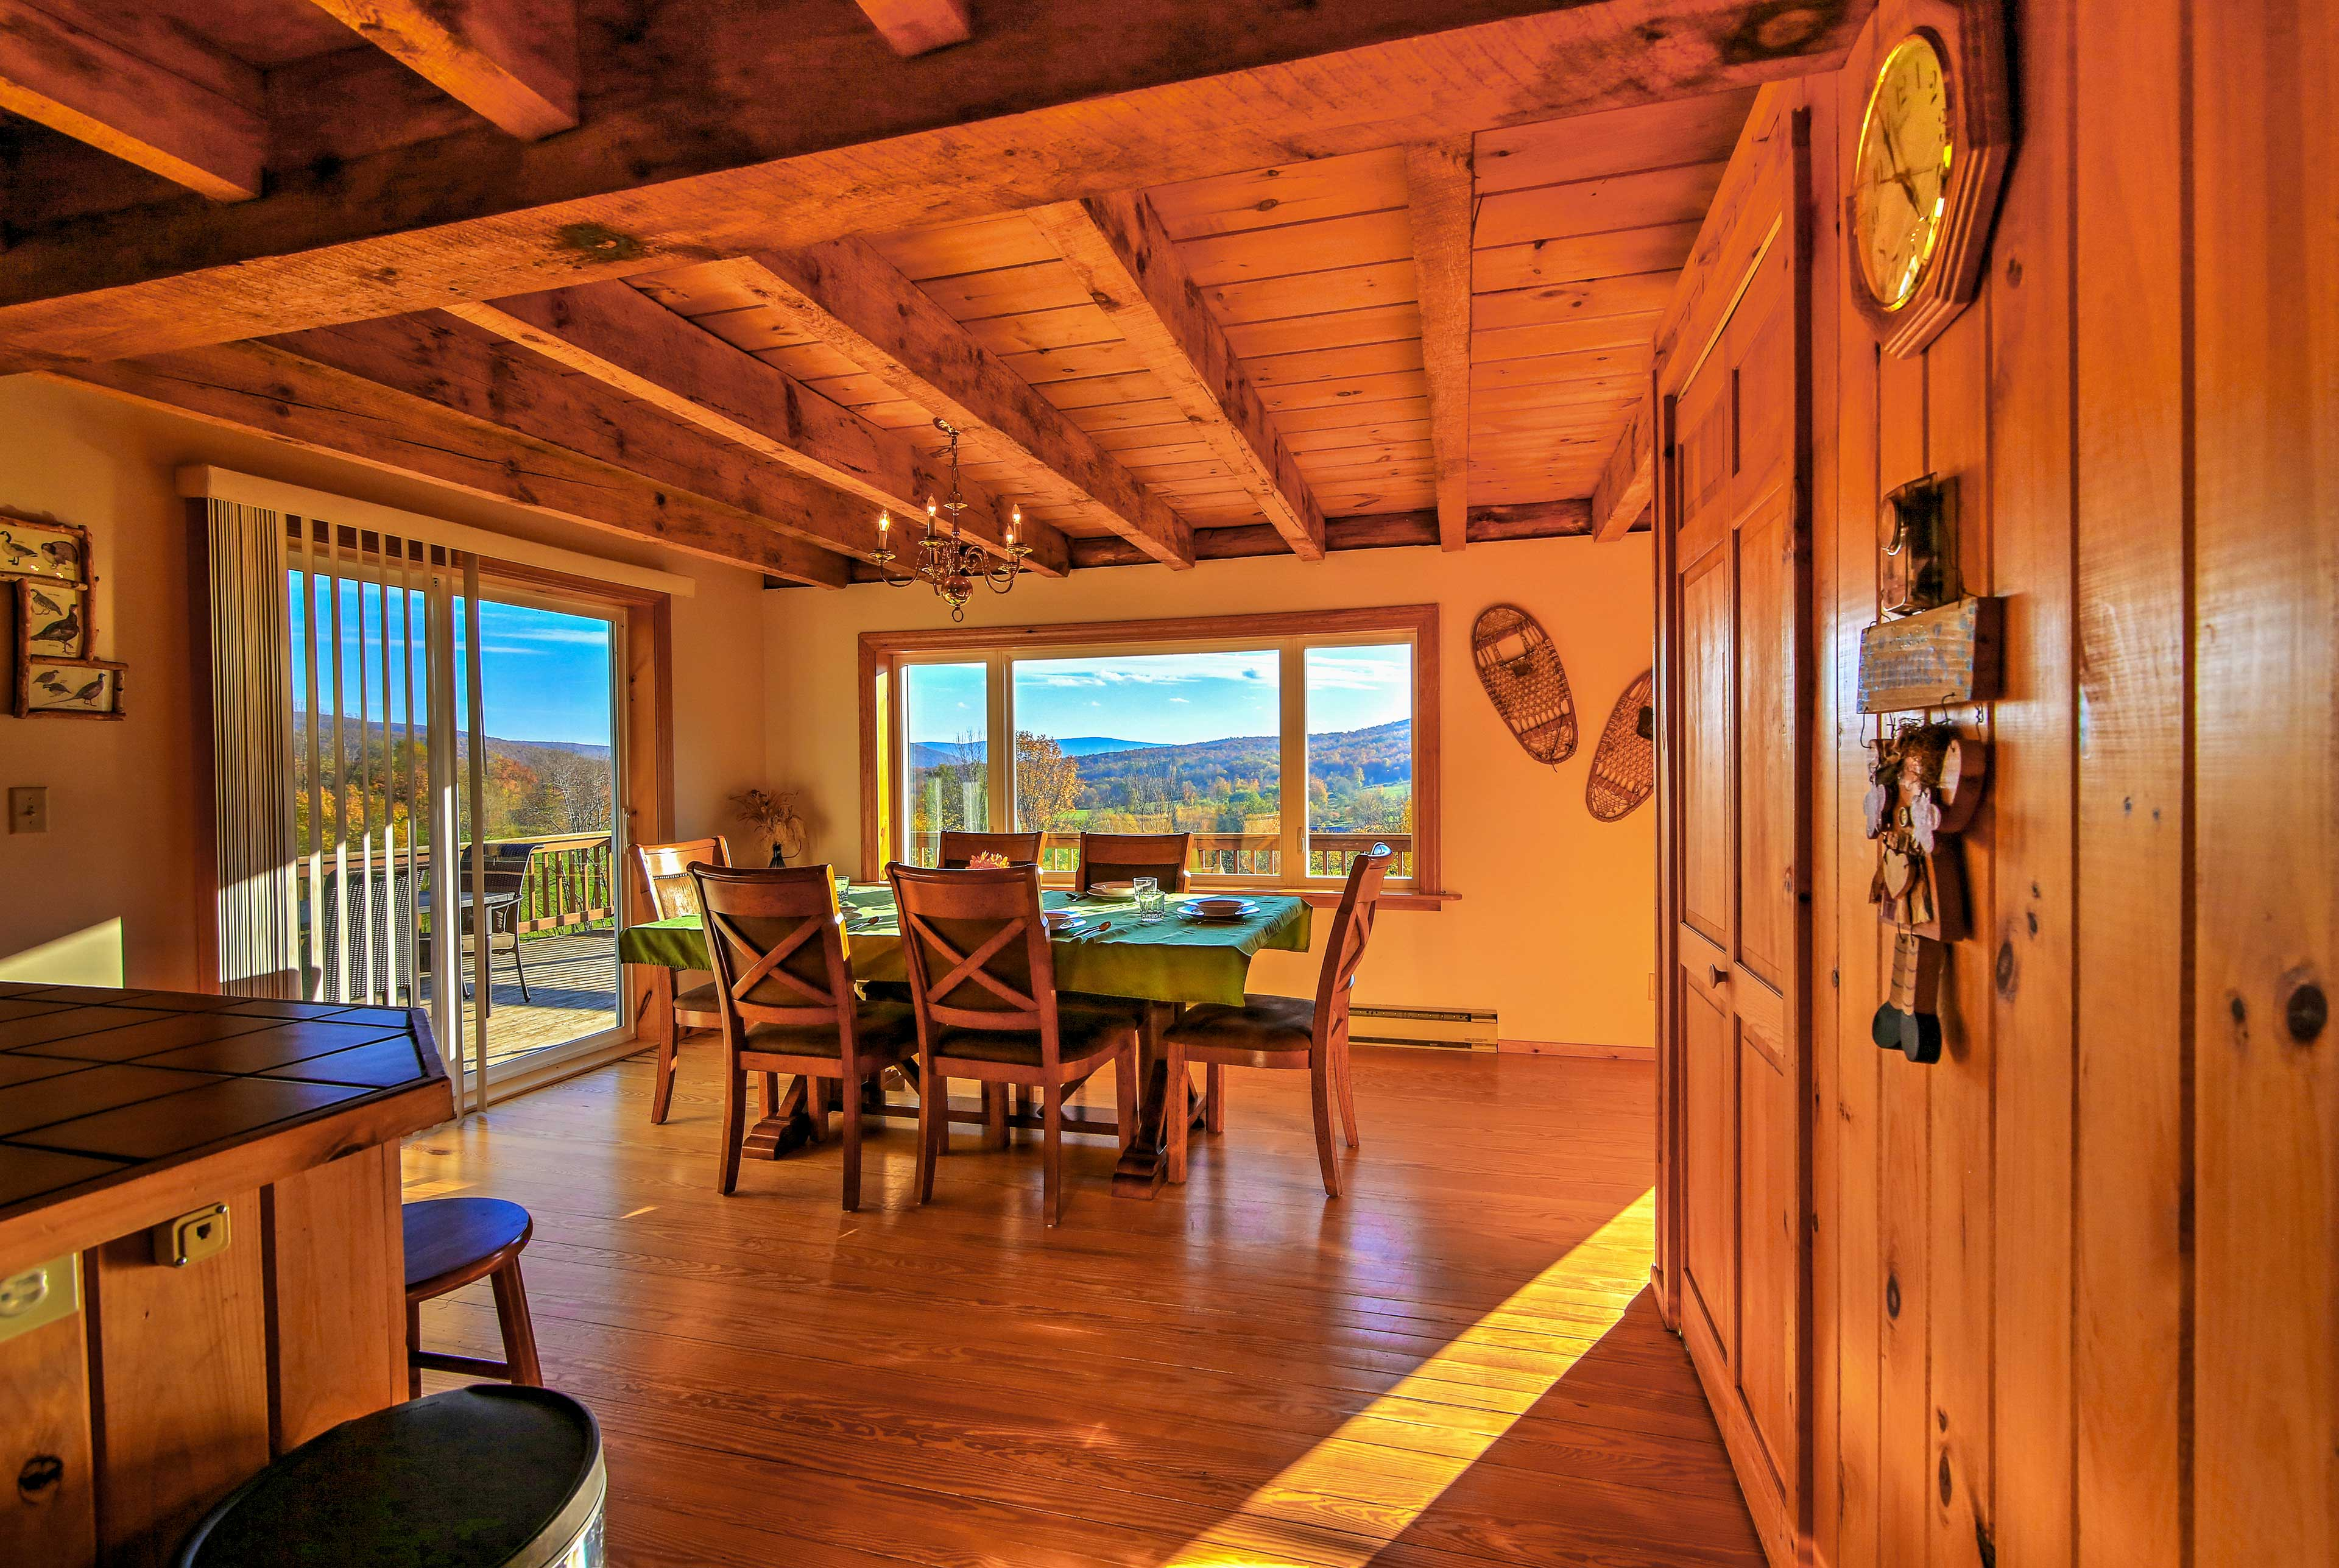 The cabin provides a warm atmosphere with wood features and rustic decor.